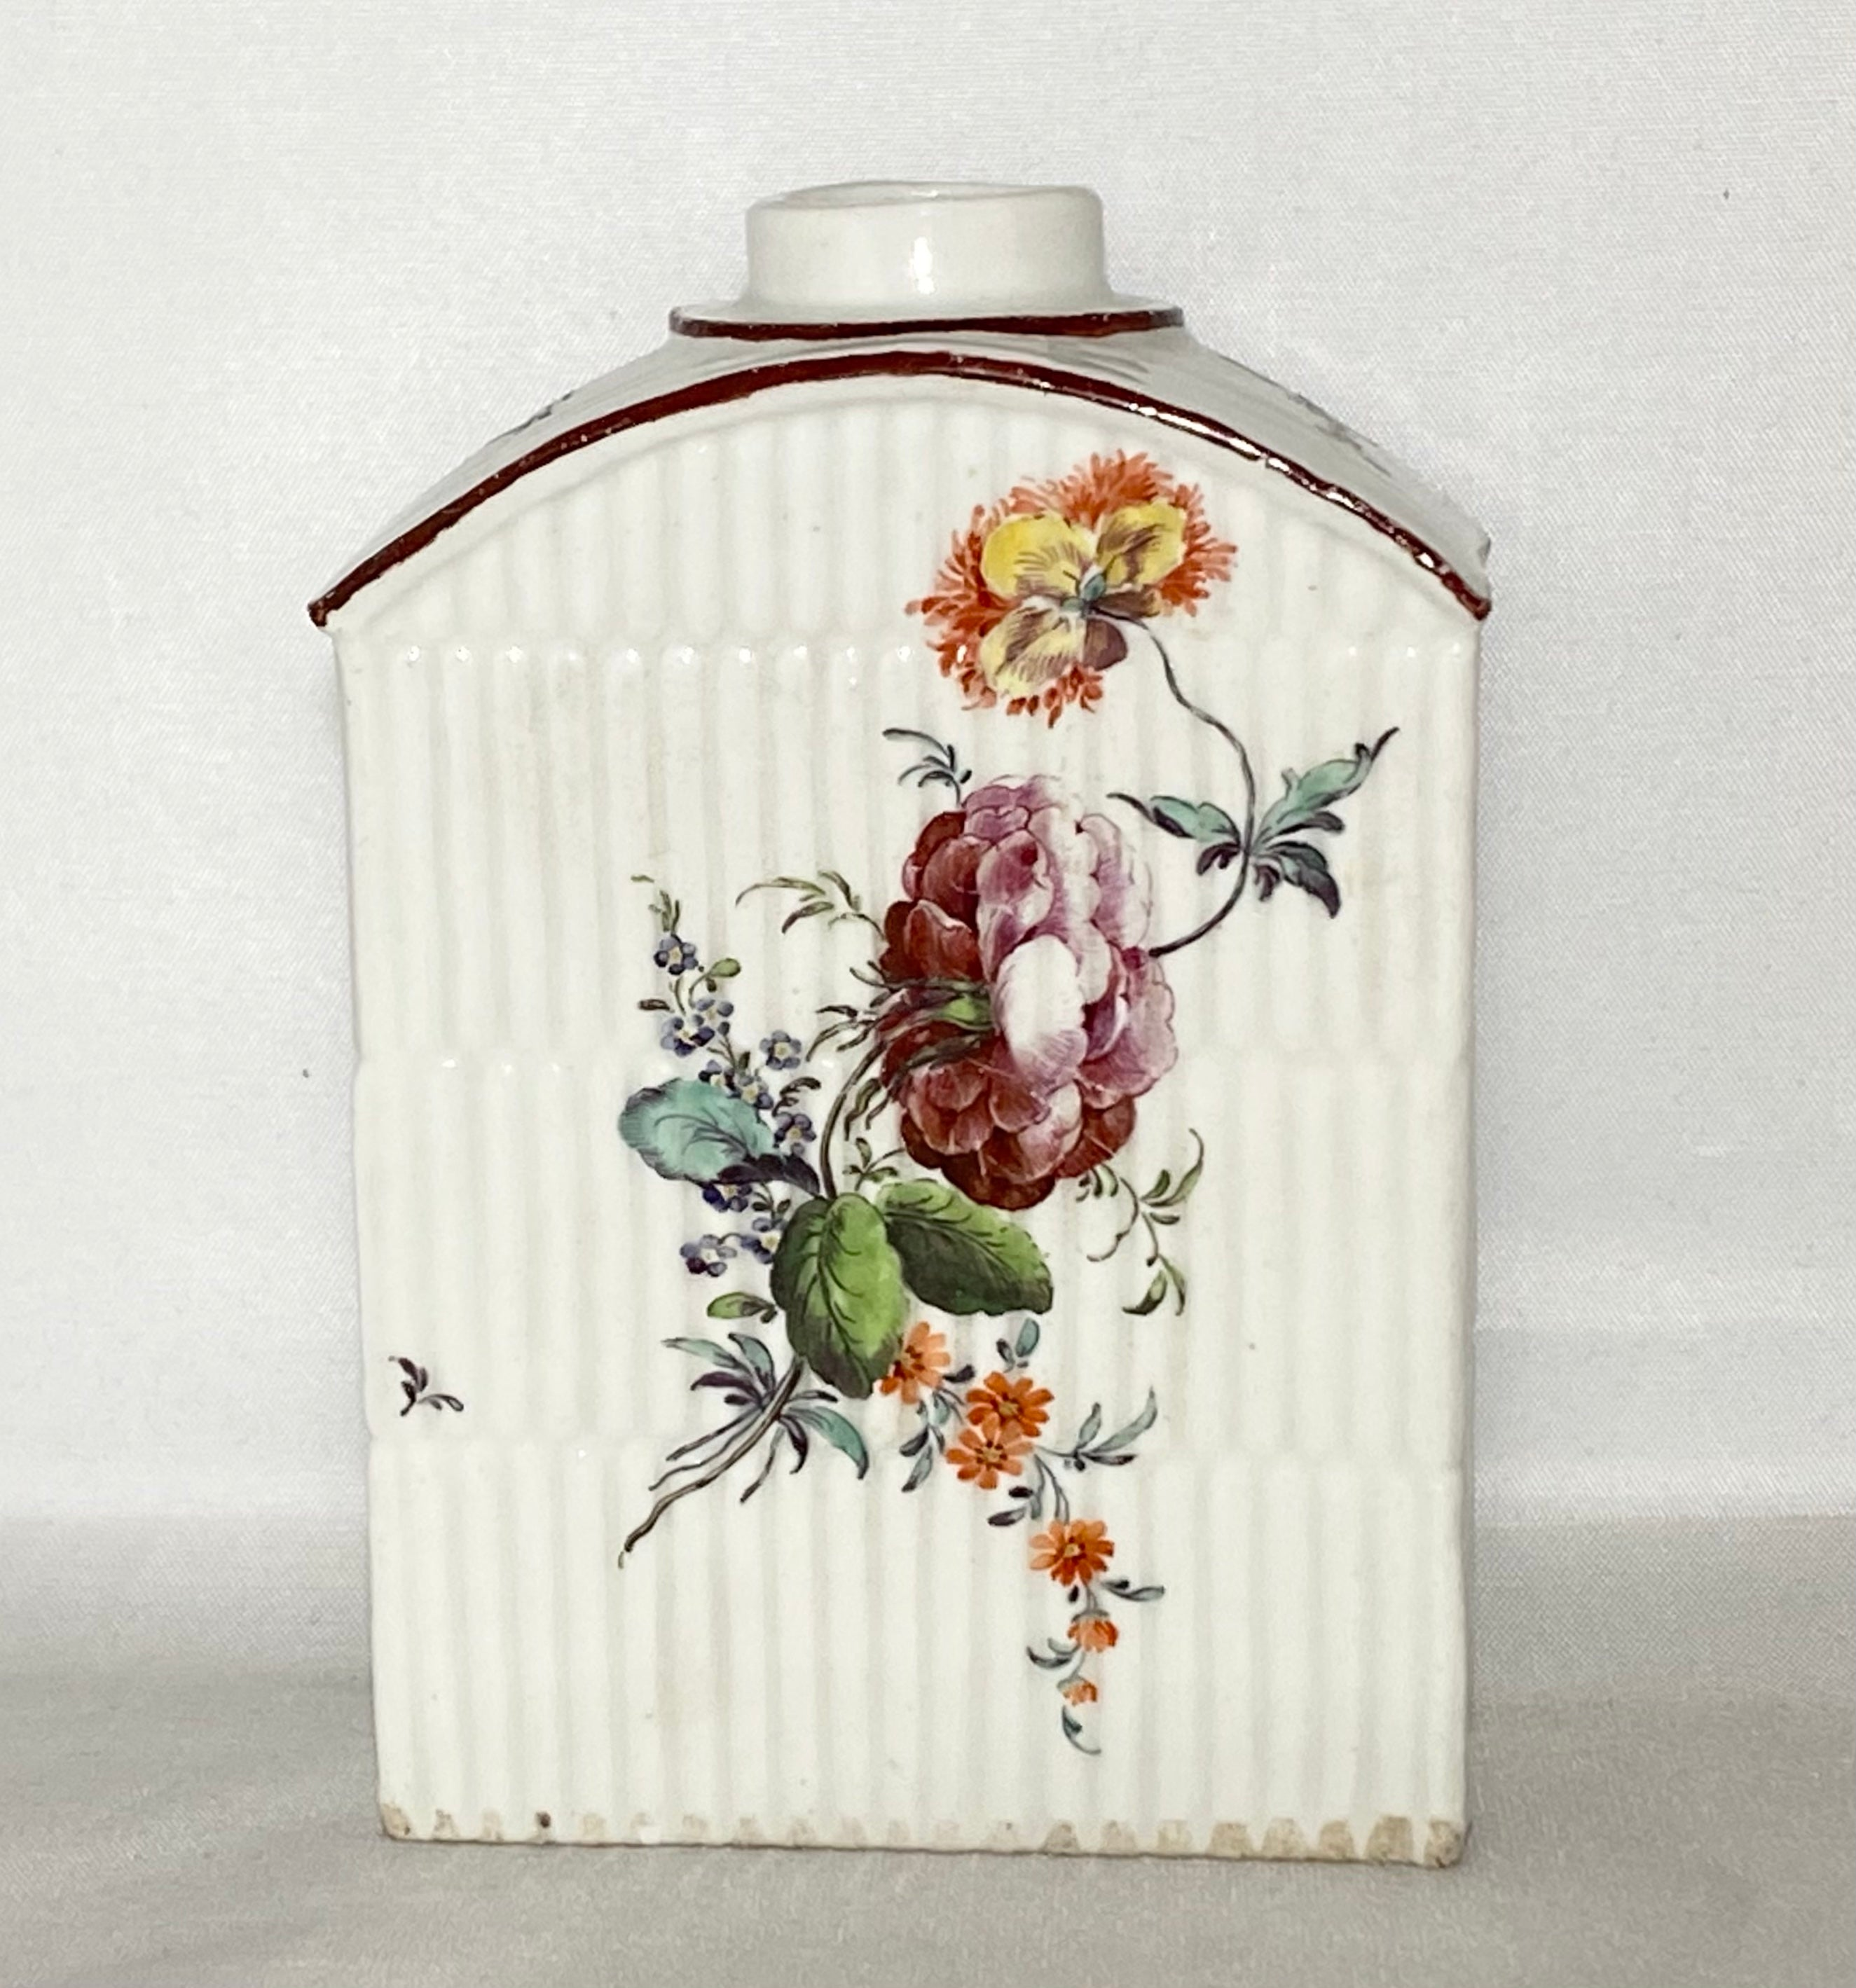 18th C Rauenstein Porcelain Tea Caddy